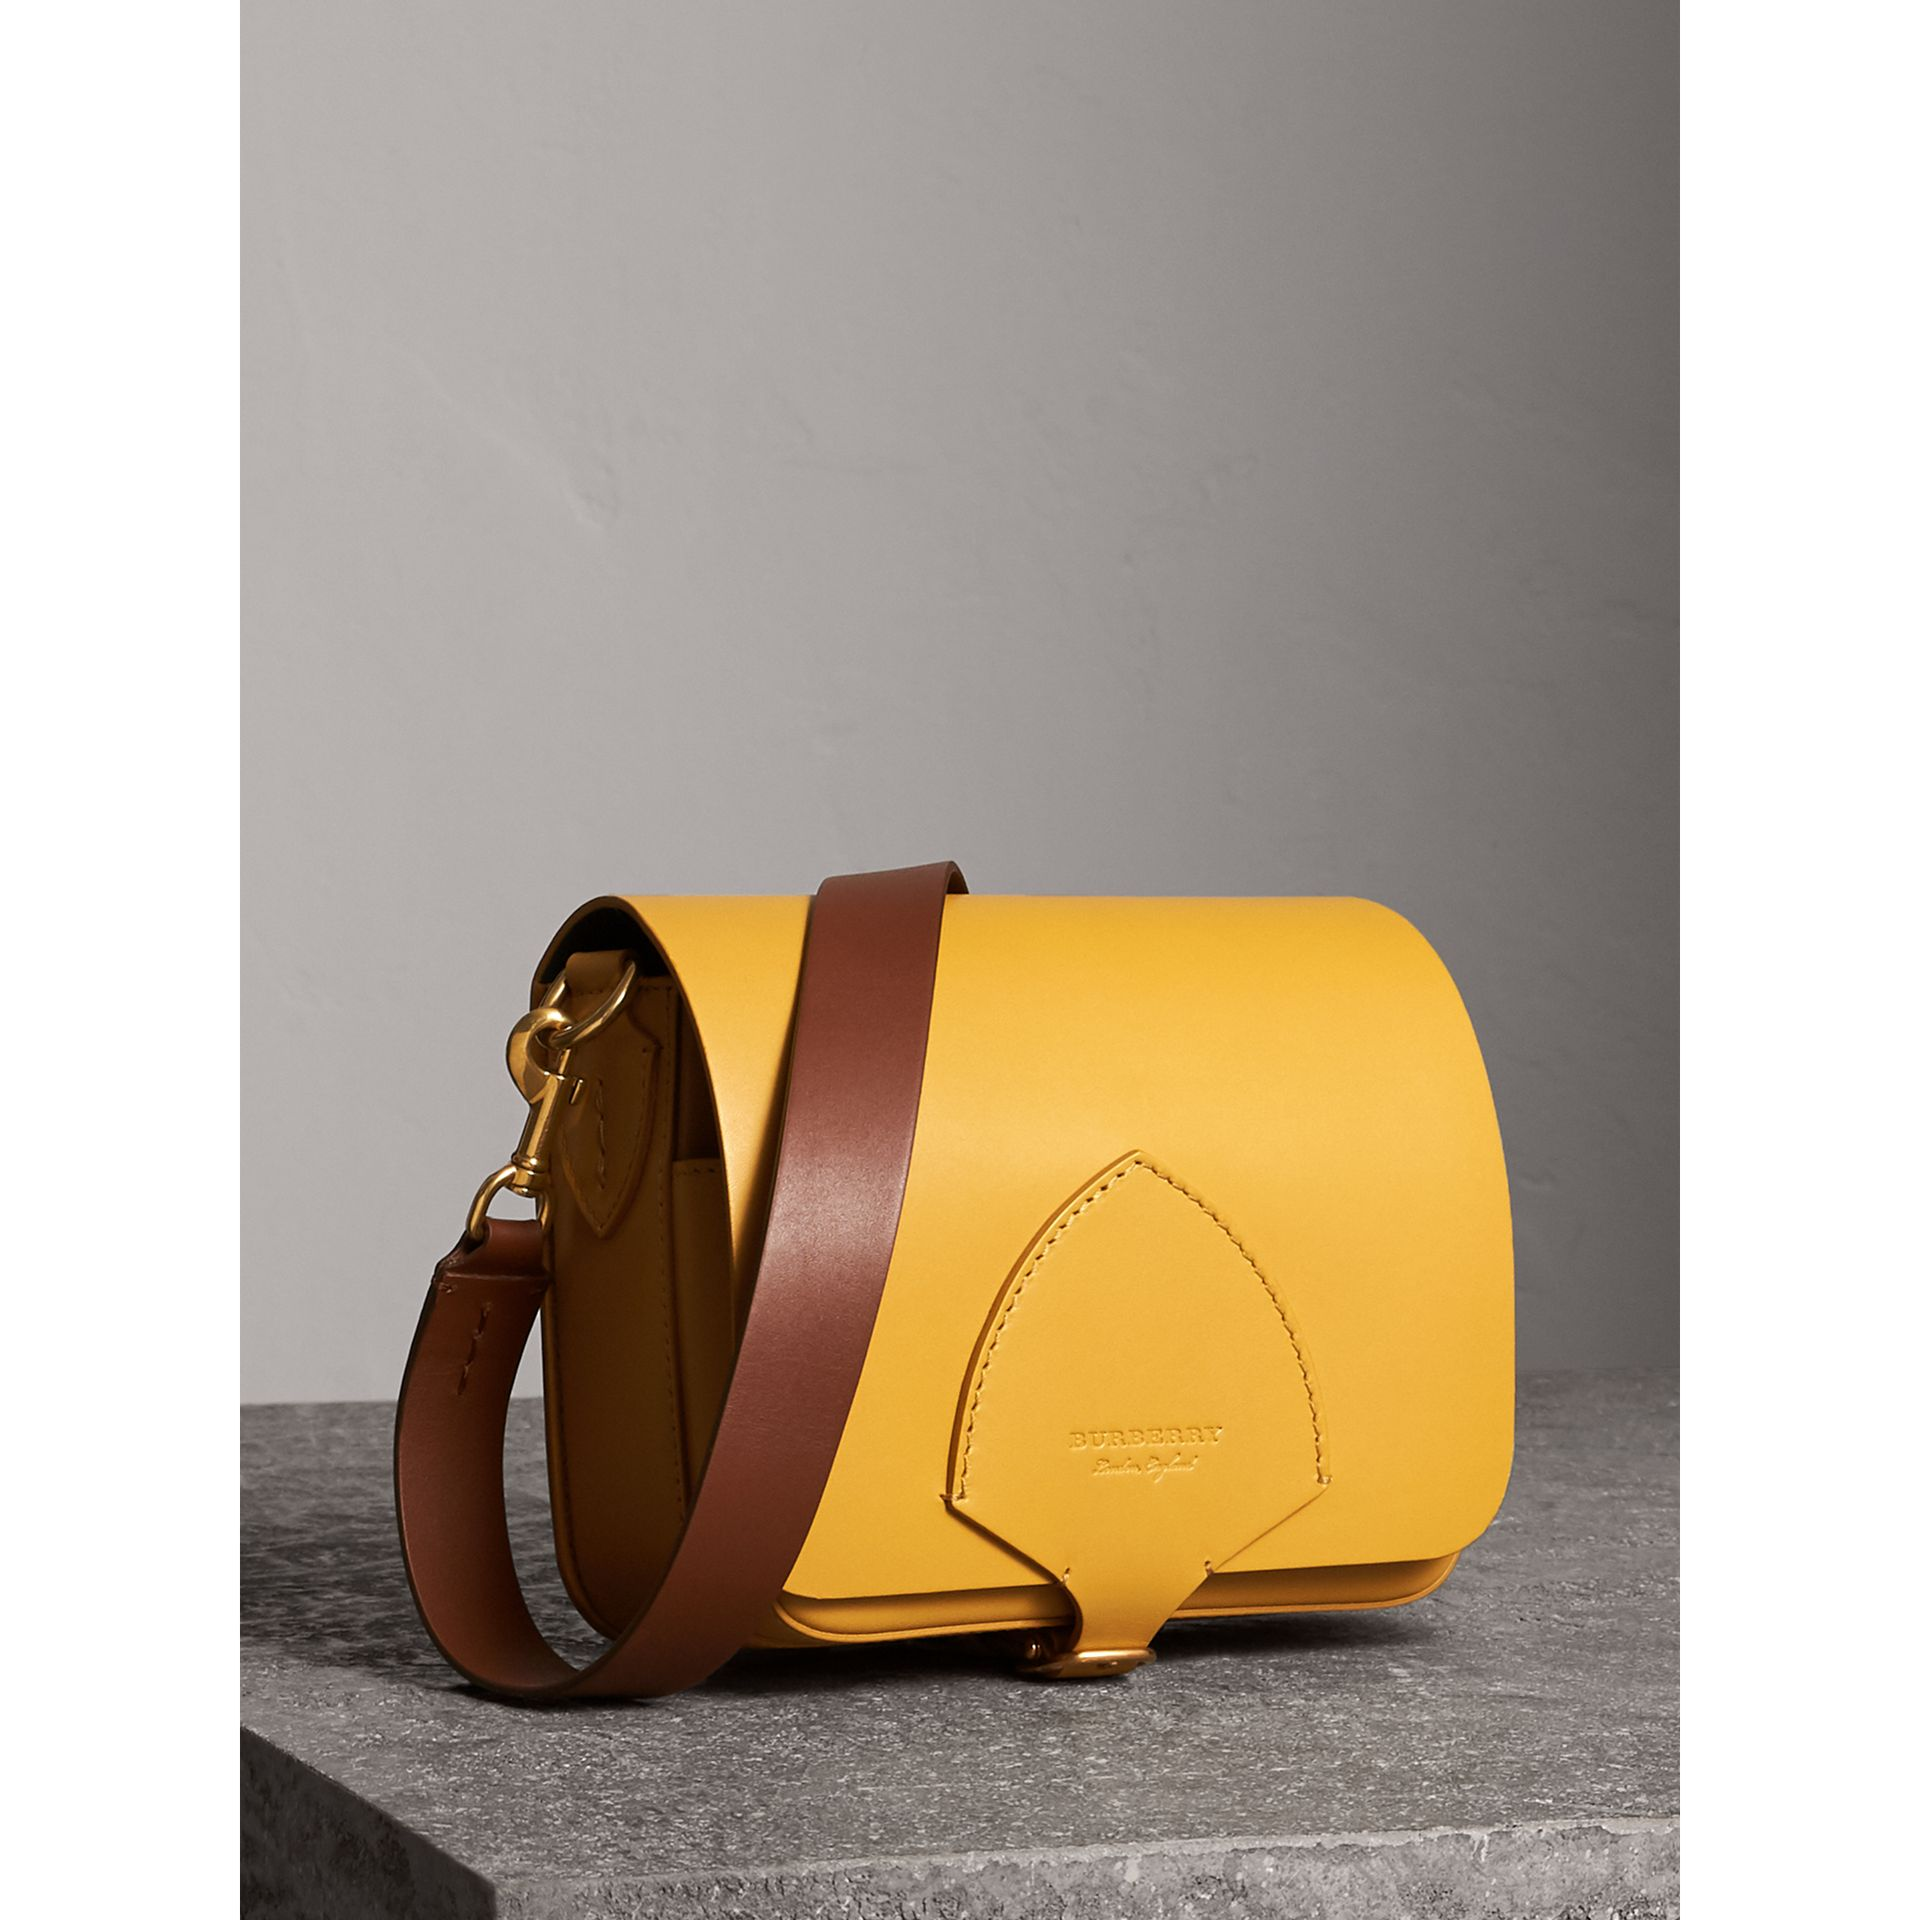 The Square Satchel in Leather in Larch Yellow - Women | Burberry Australia - gallery image 6